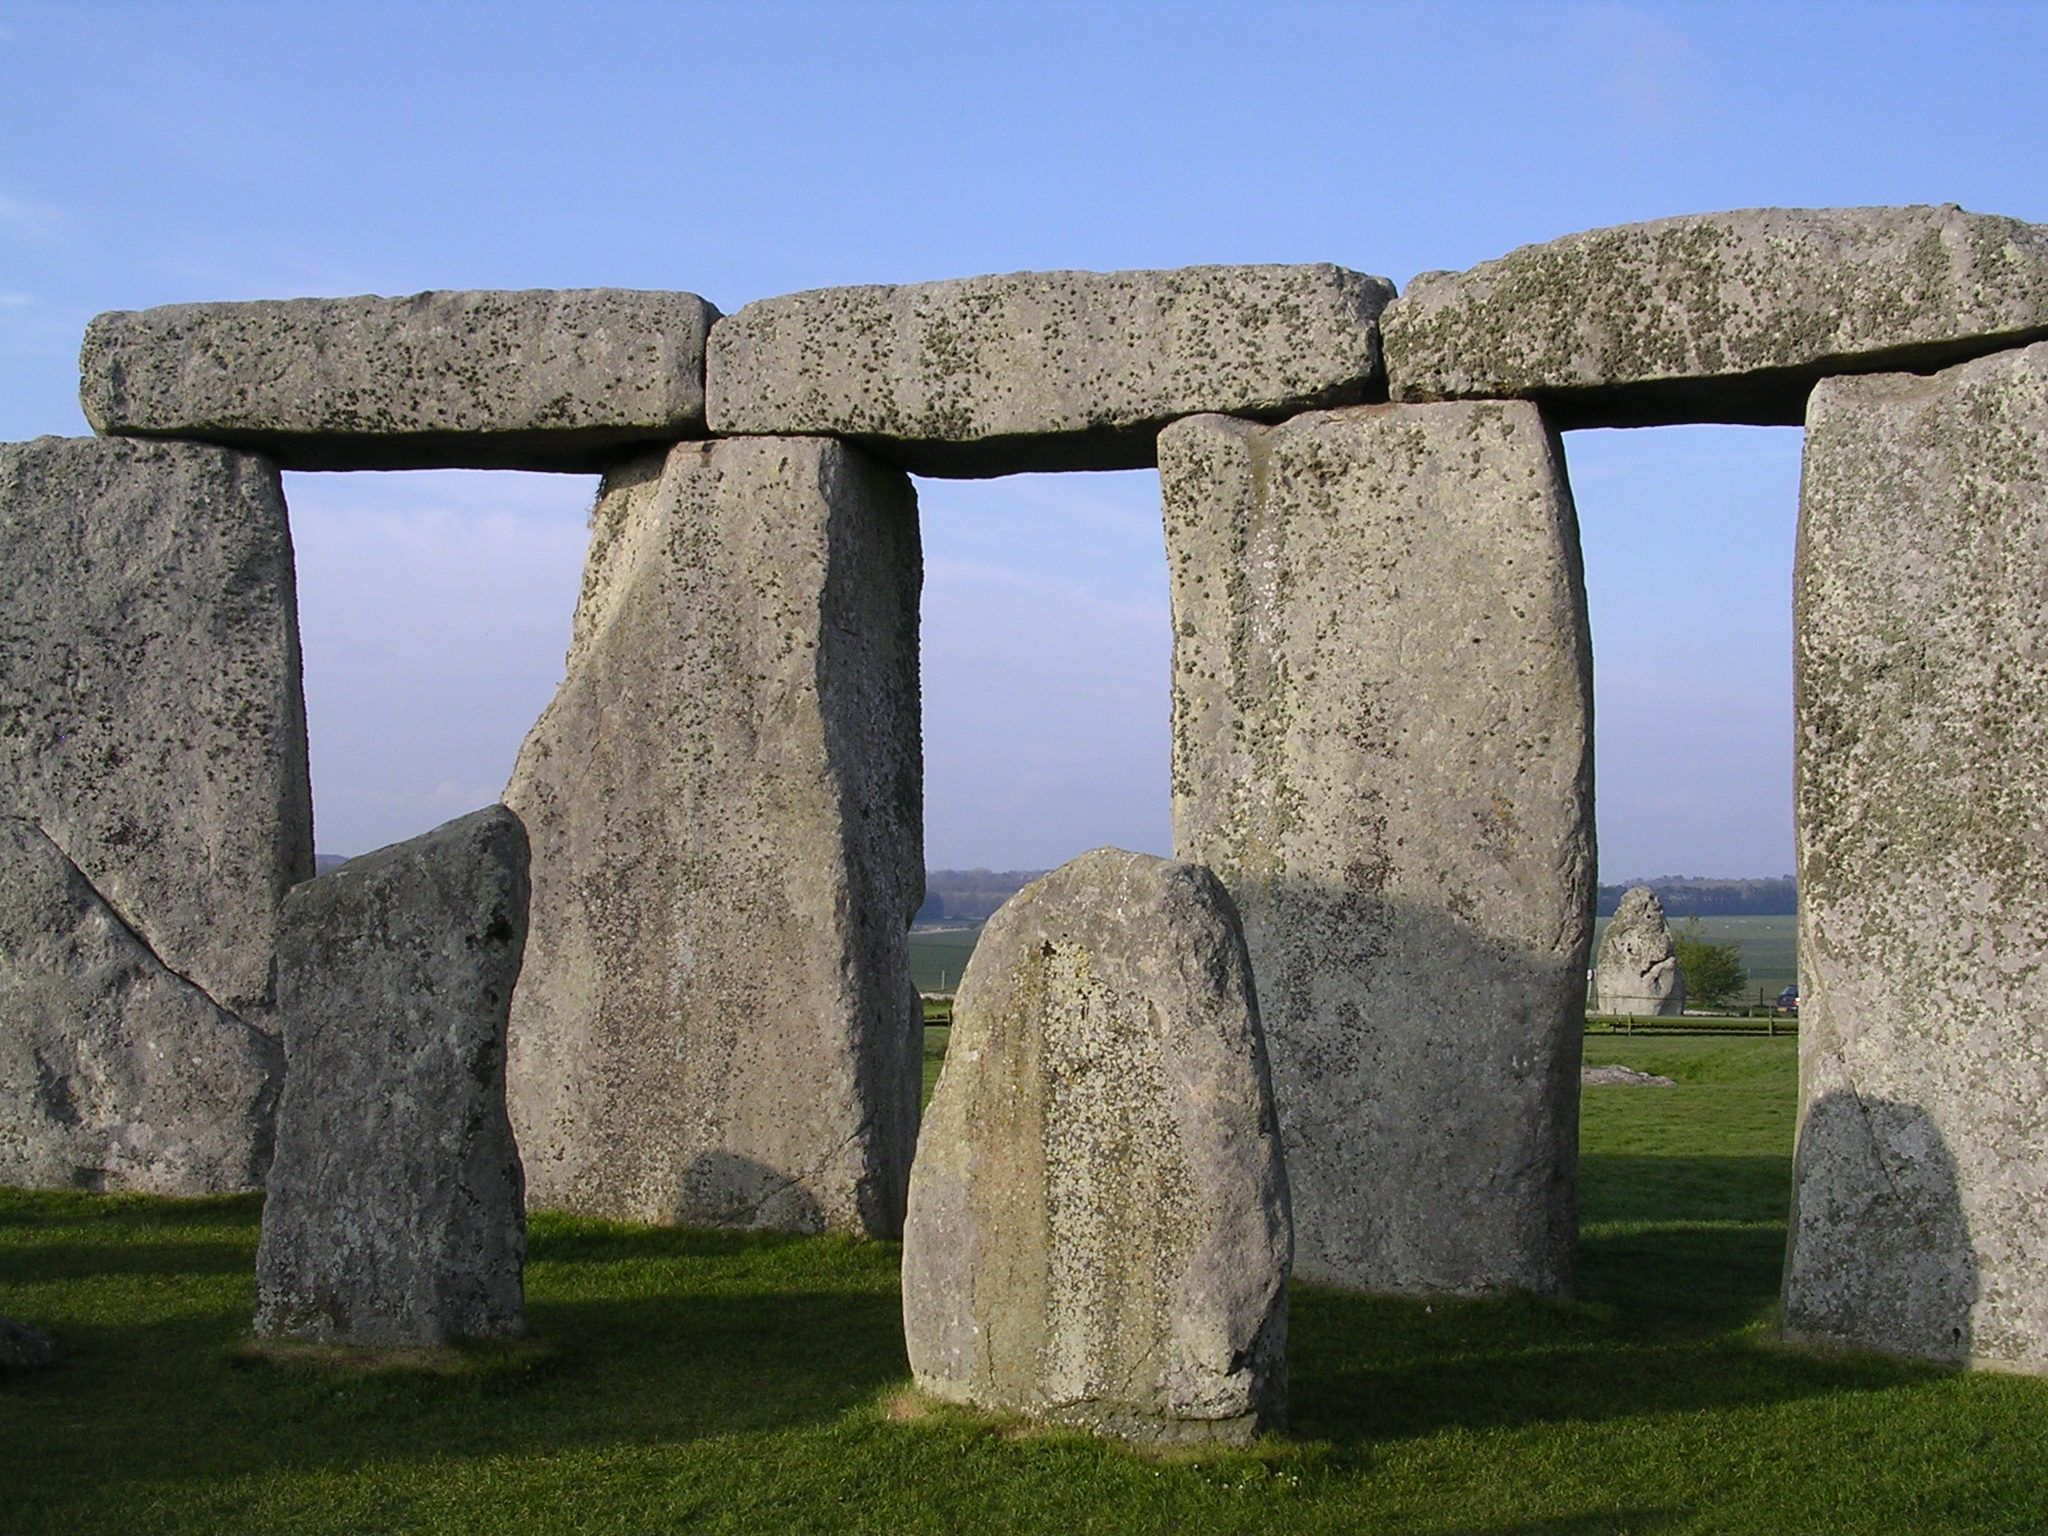 Trabeated Construction Employing The Post And Beam Form As Opposed To The Arch Form Stonehenge An Example Of Neolith Stonehenge Megalith Stonehenge Images